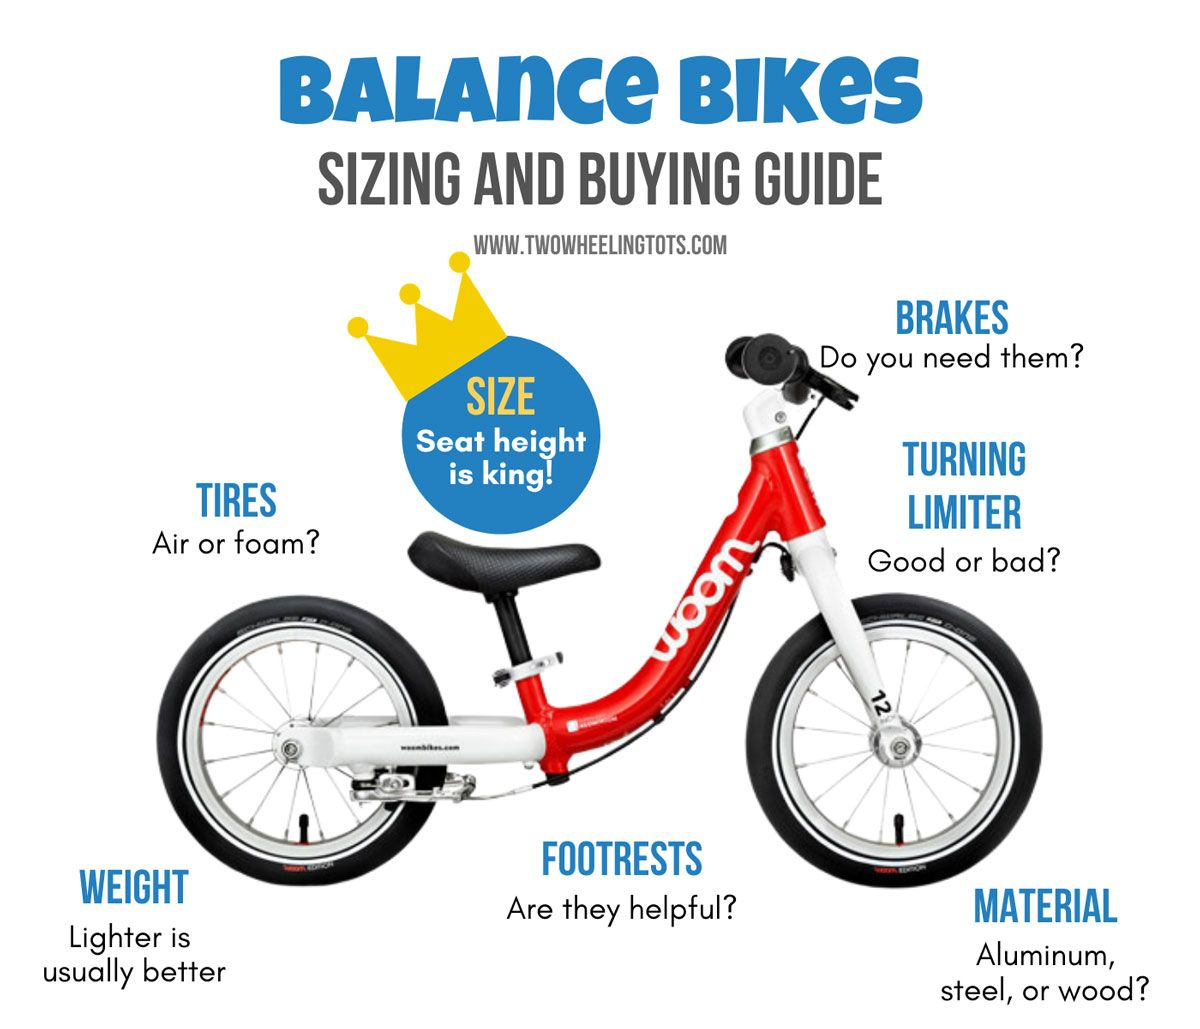 Balance bike sizing and buying guide graphic showing the different features of balance bikes